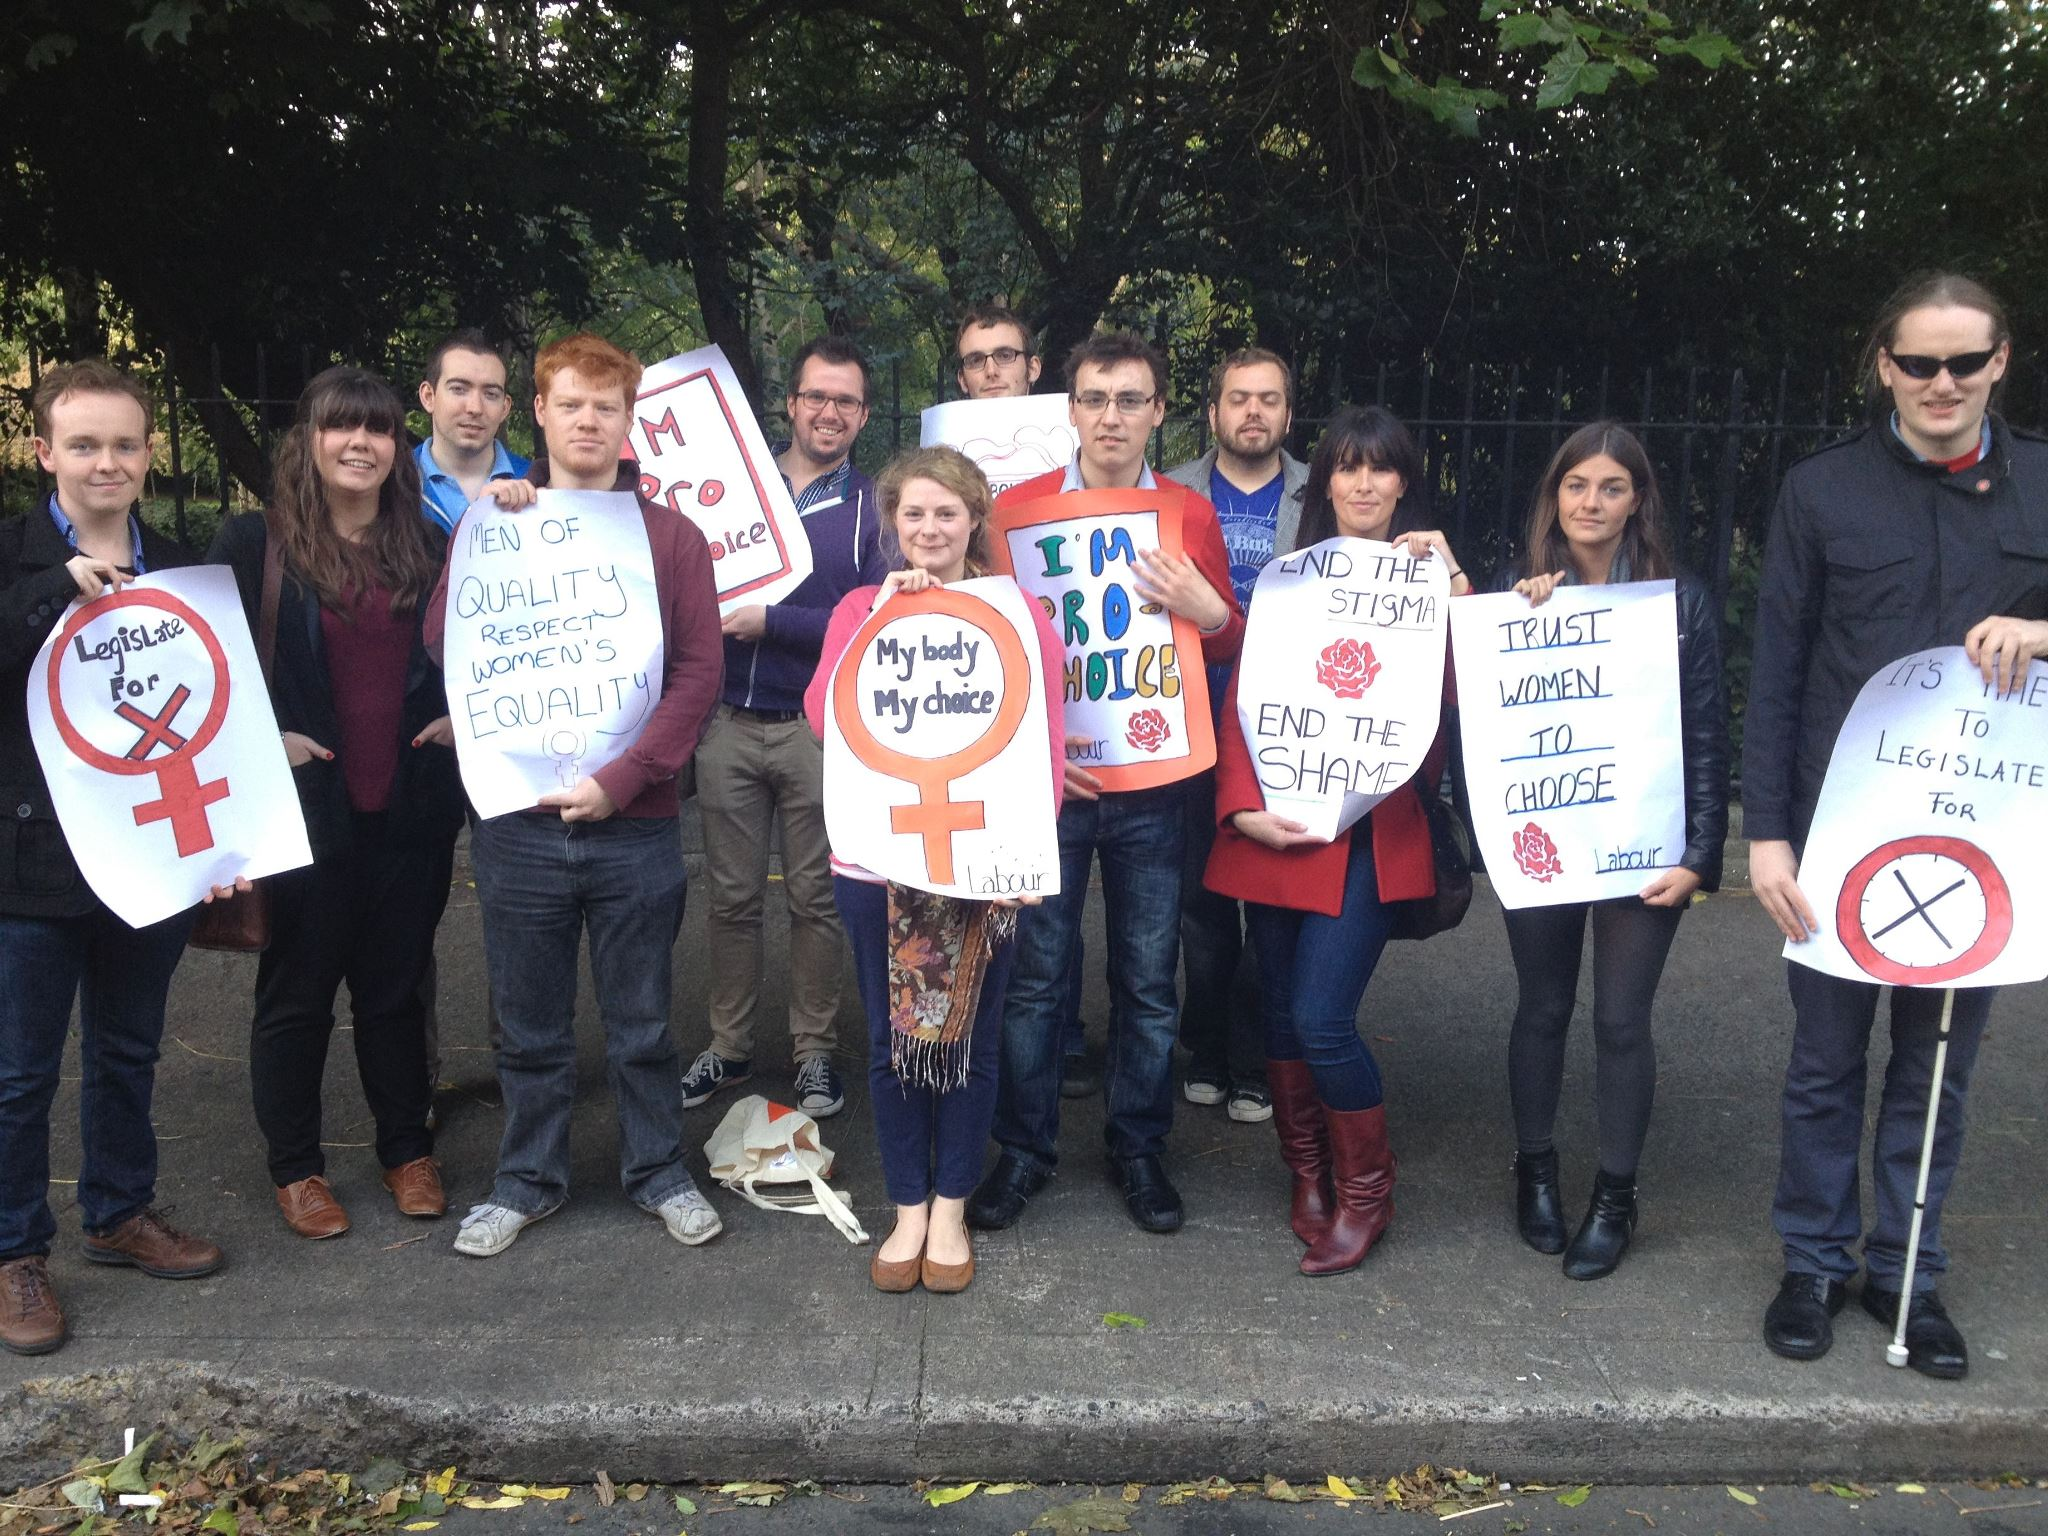 Labour Youth members following the March for Choice, Dublin (29 September 2012)